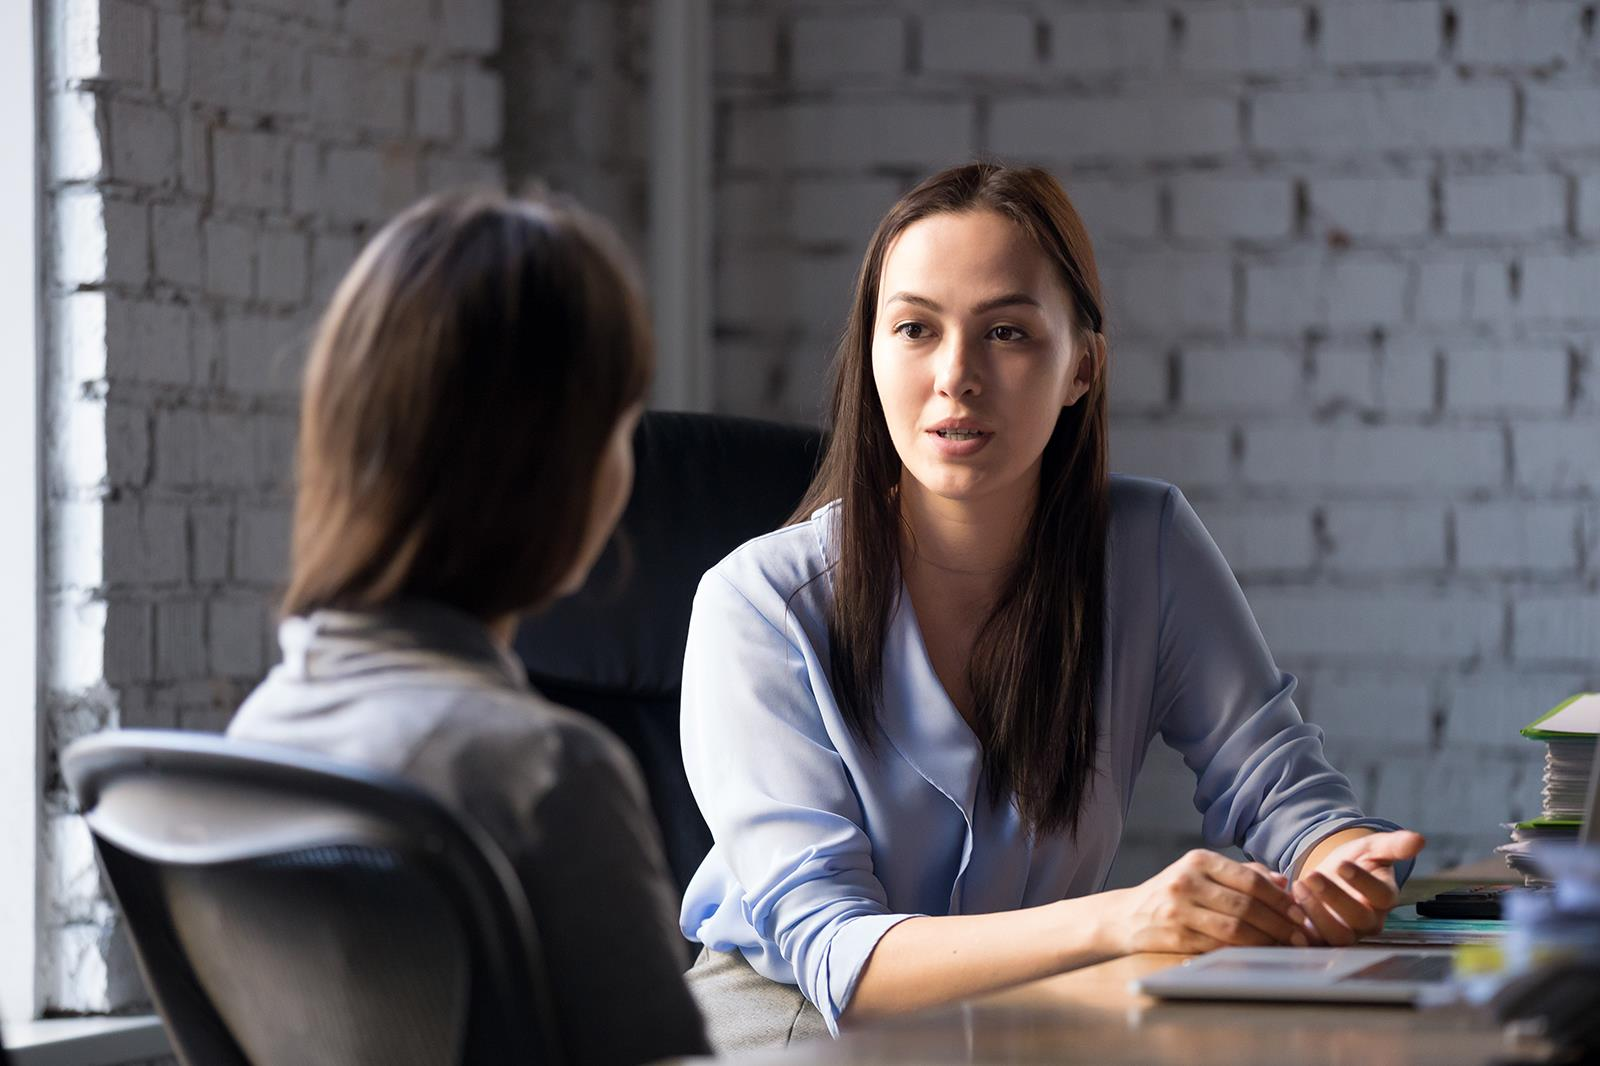 Woman conducting an interview with another woman